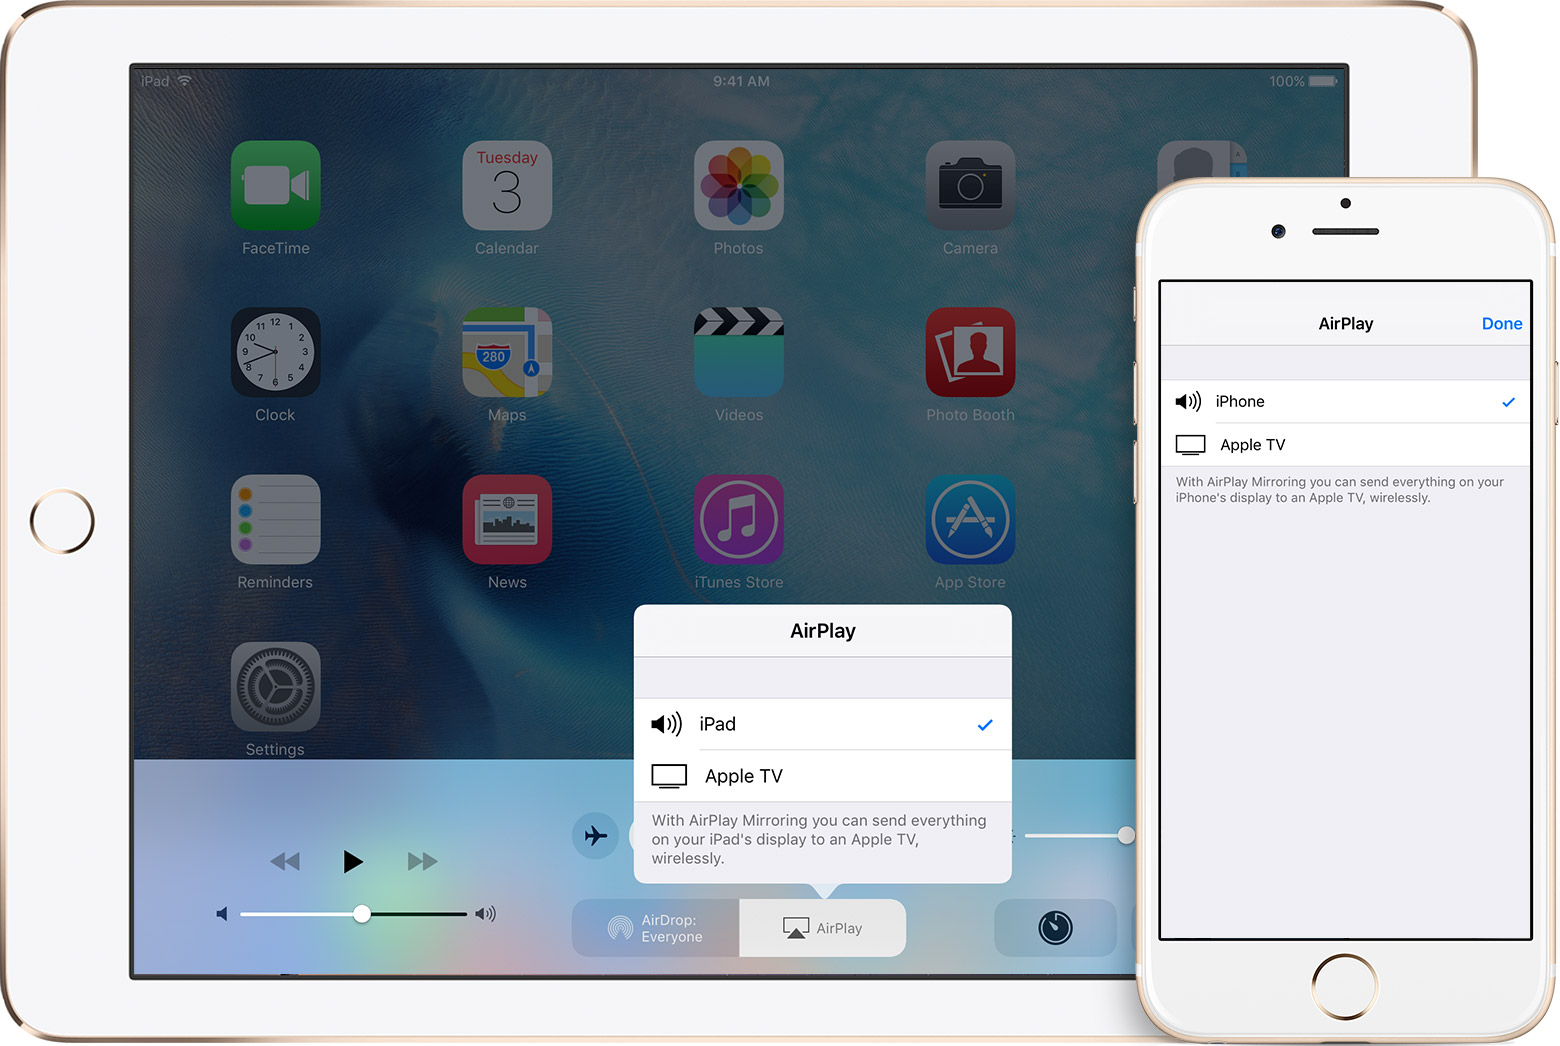 ios9 ipad iphone airplay off